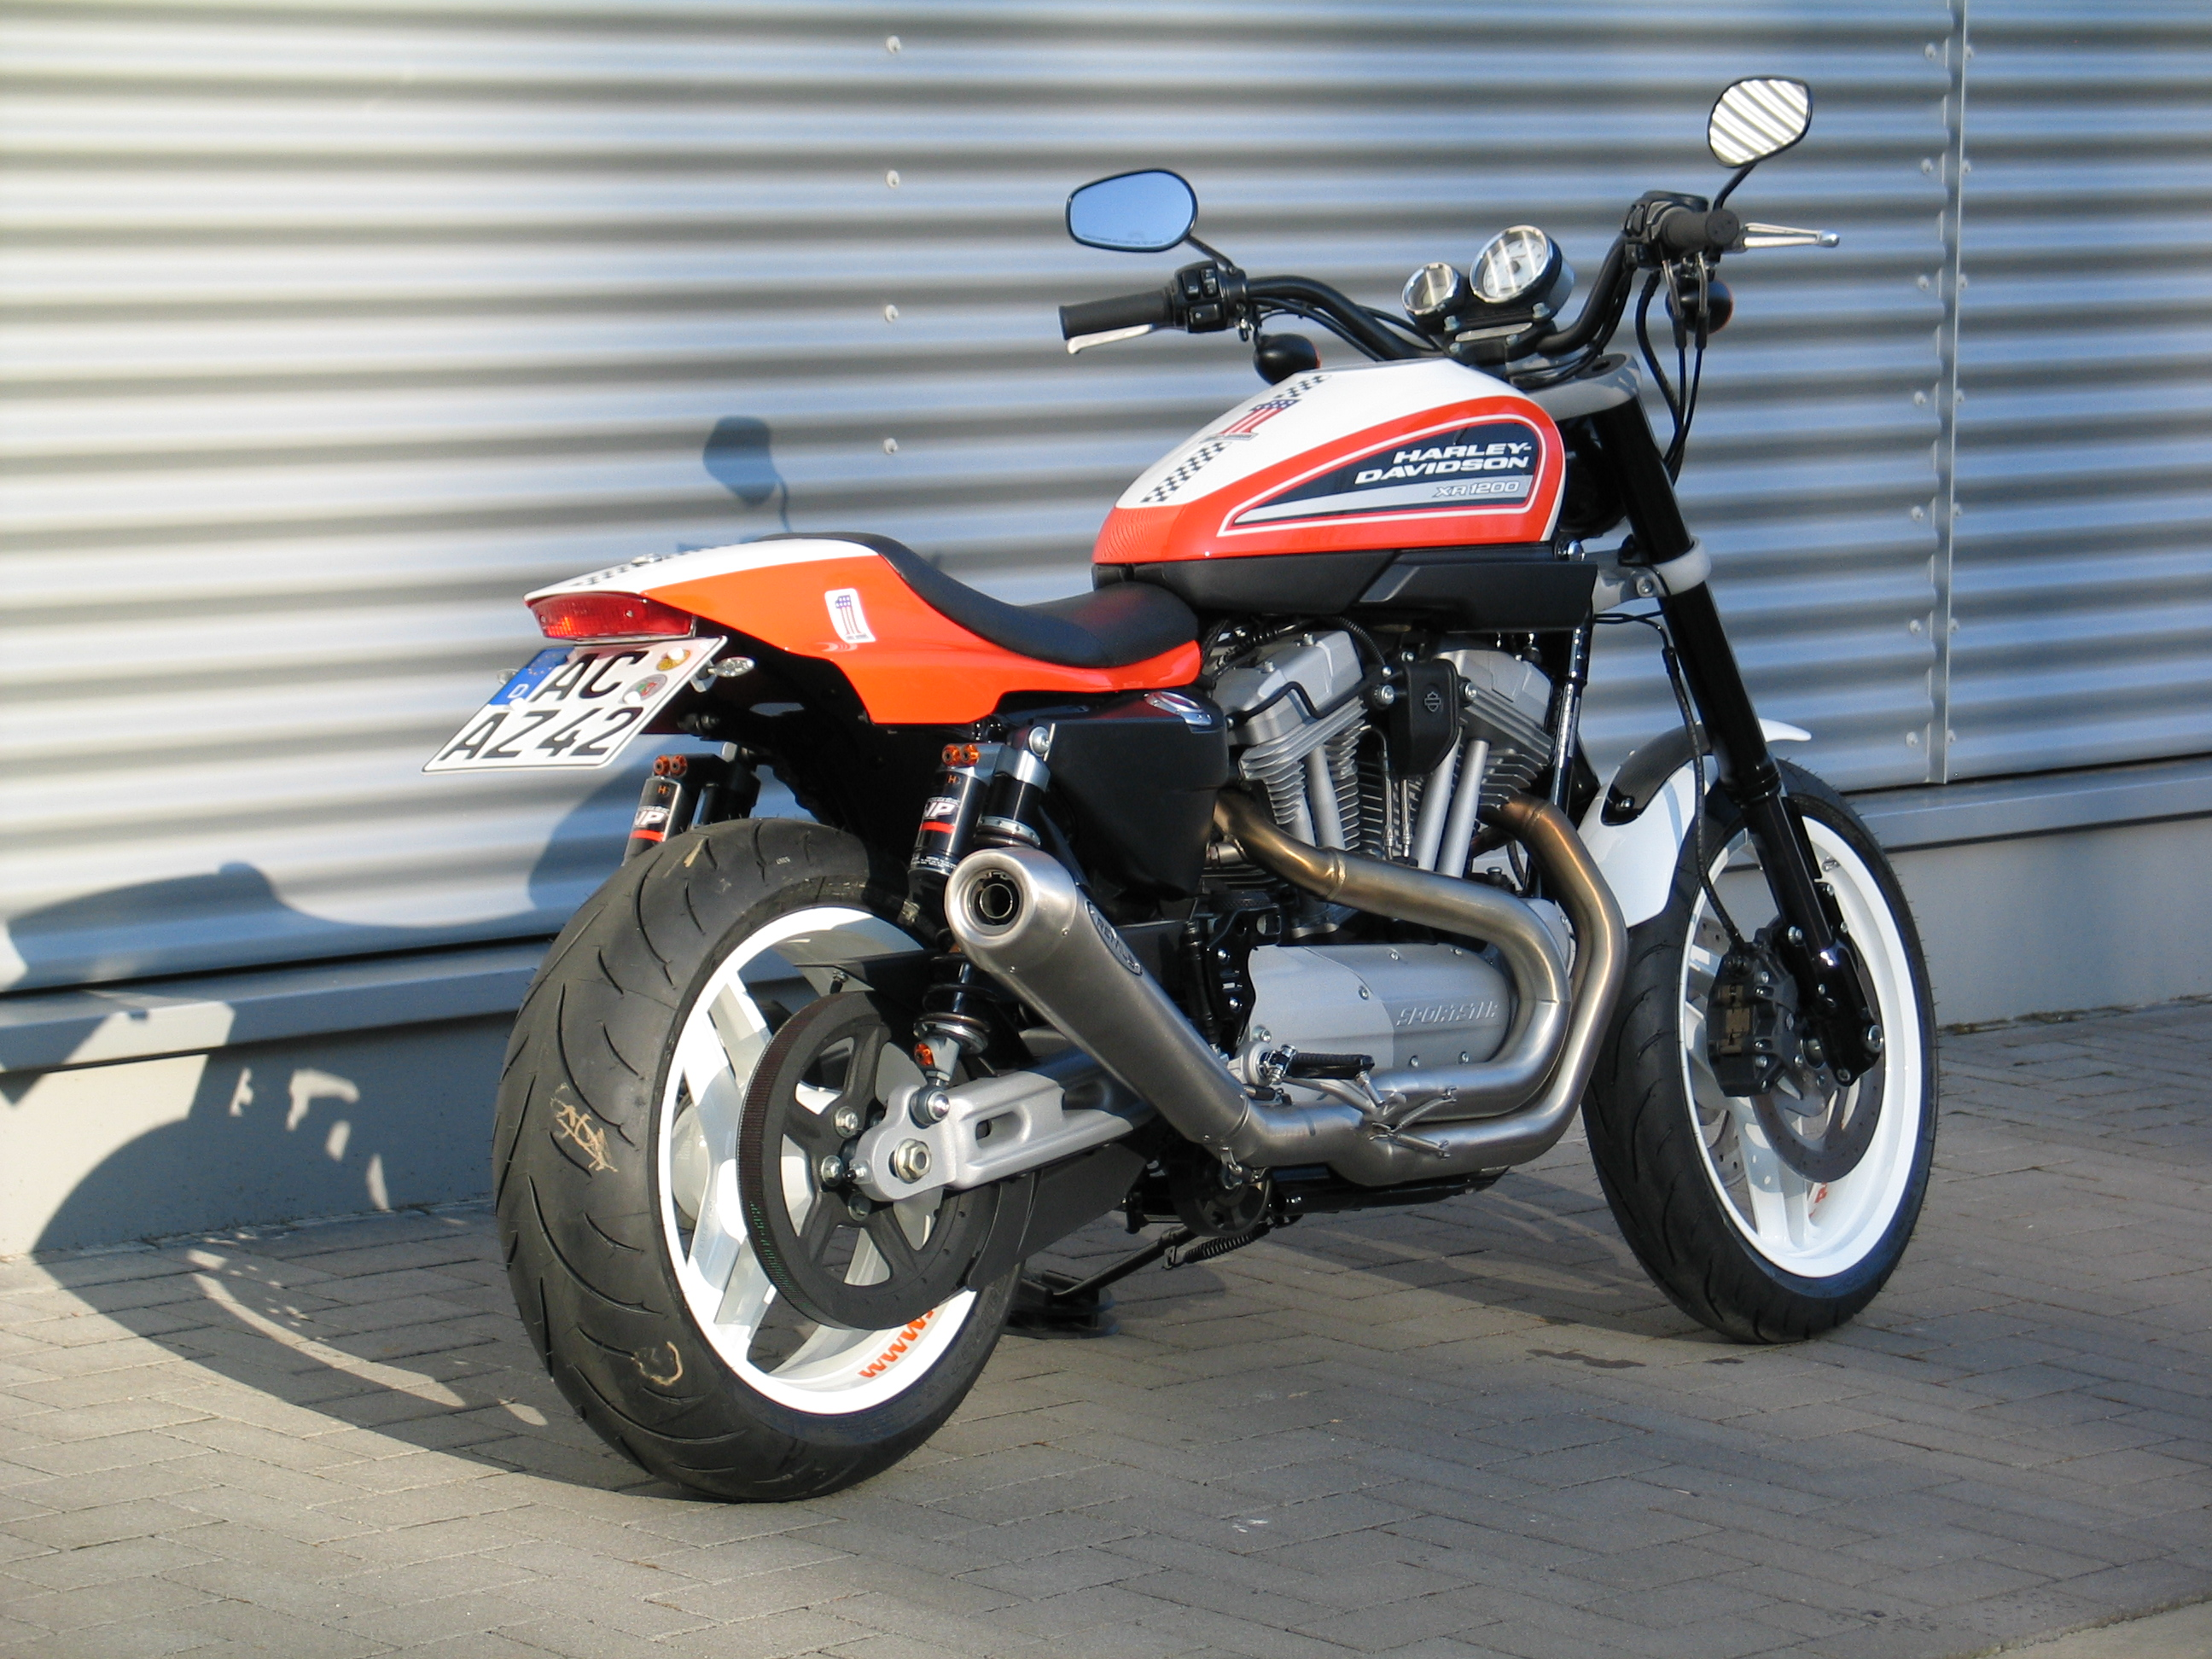 Pictures of Xr1200 Custom Parts. APPLICATIONS & PRICE LIST FOR HARLEY- DAVIDSON